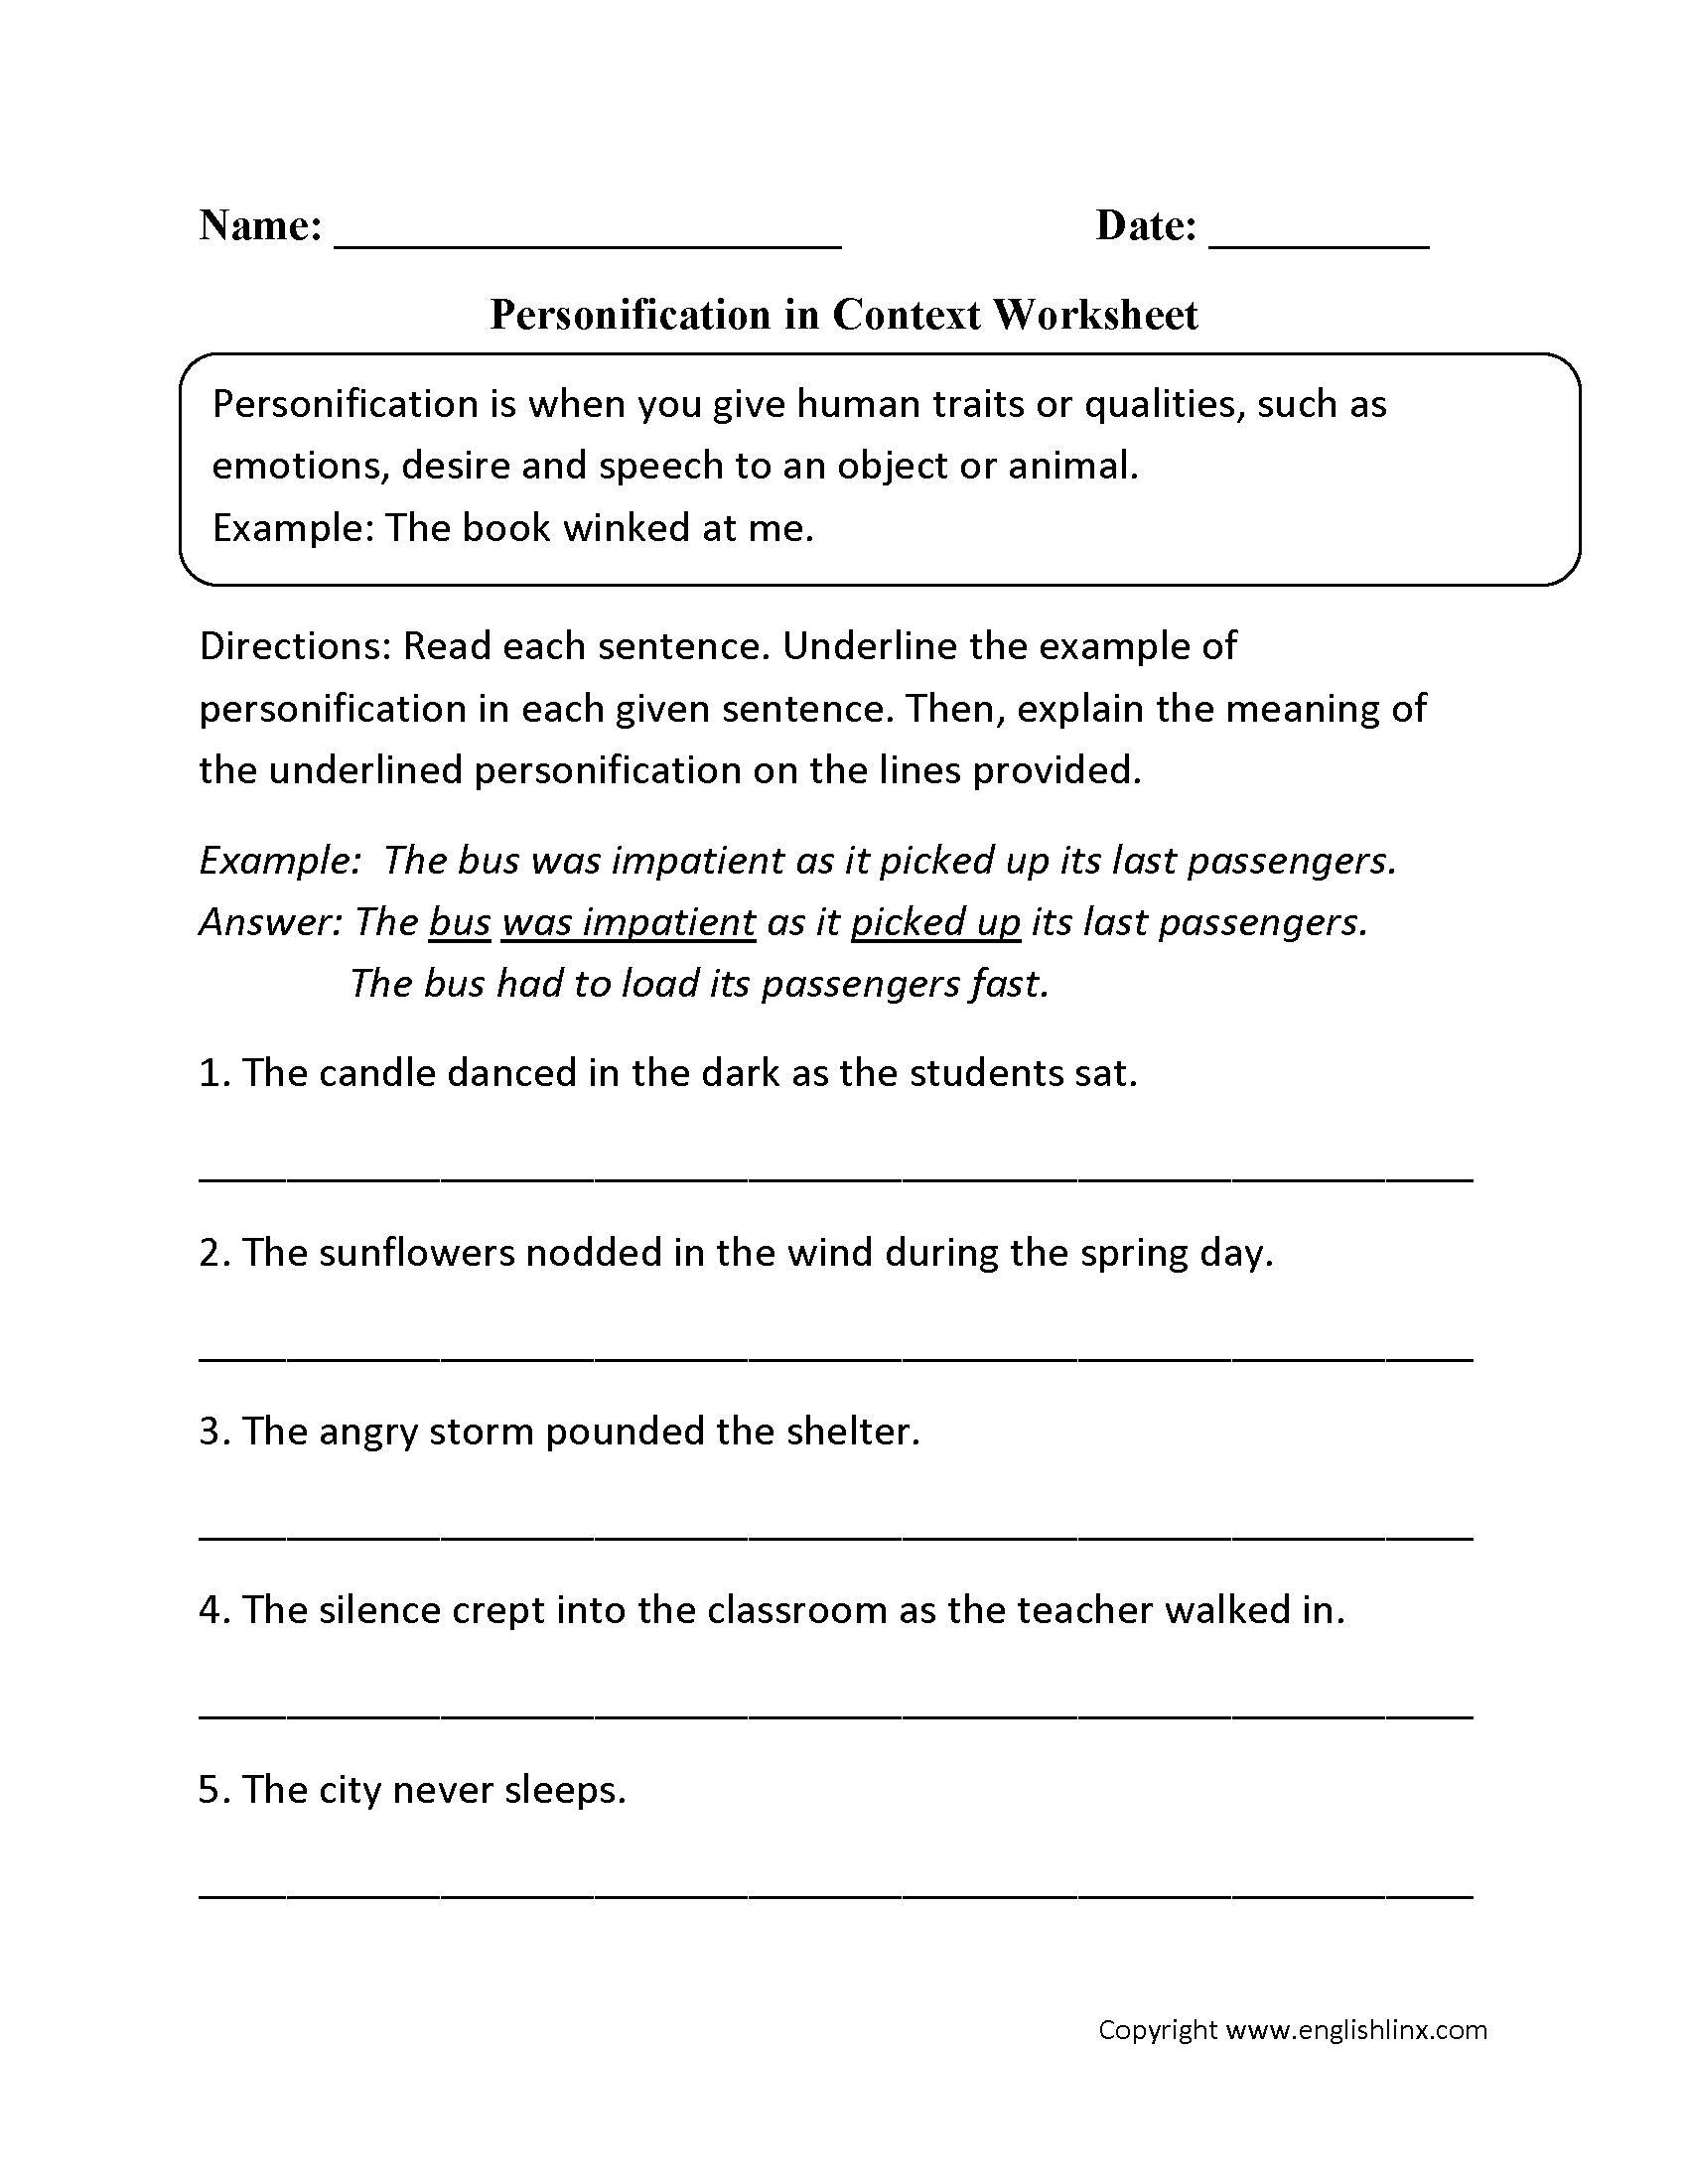 worksheet Figurative Language Worksheets For Middle School personification figurative language worksheets schoolteaching worksheets